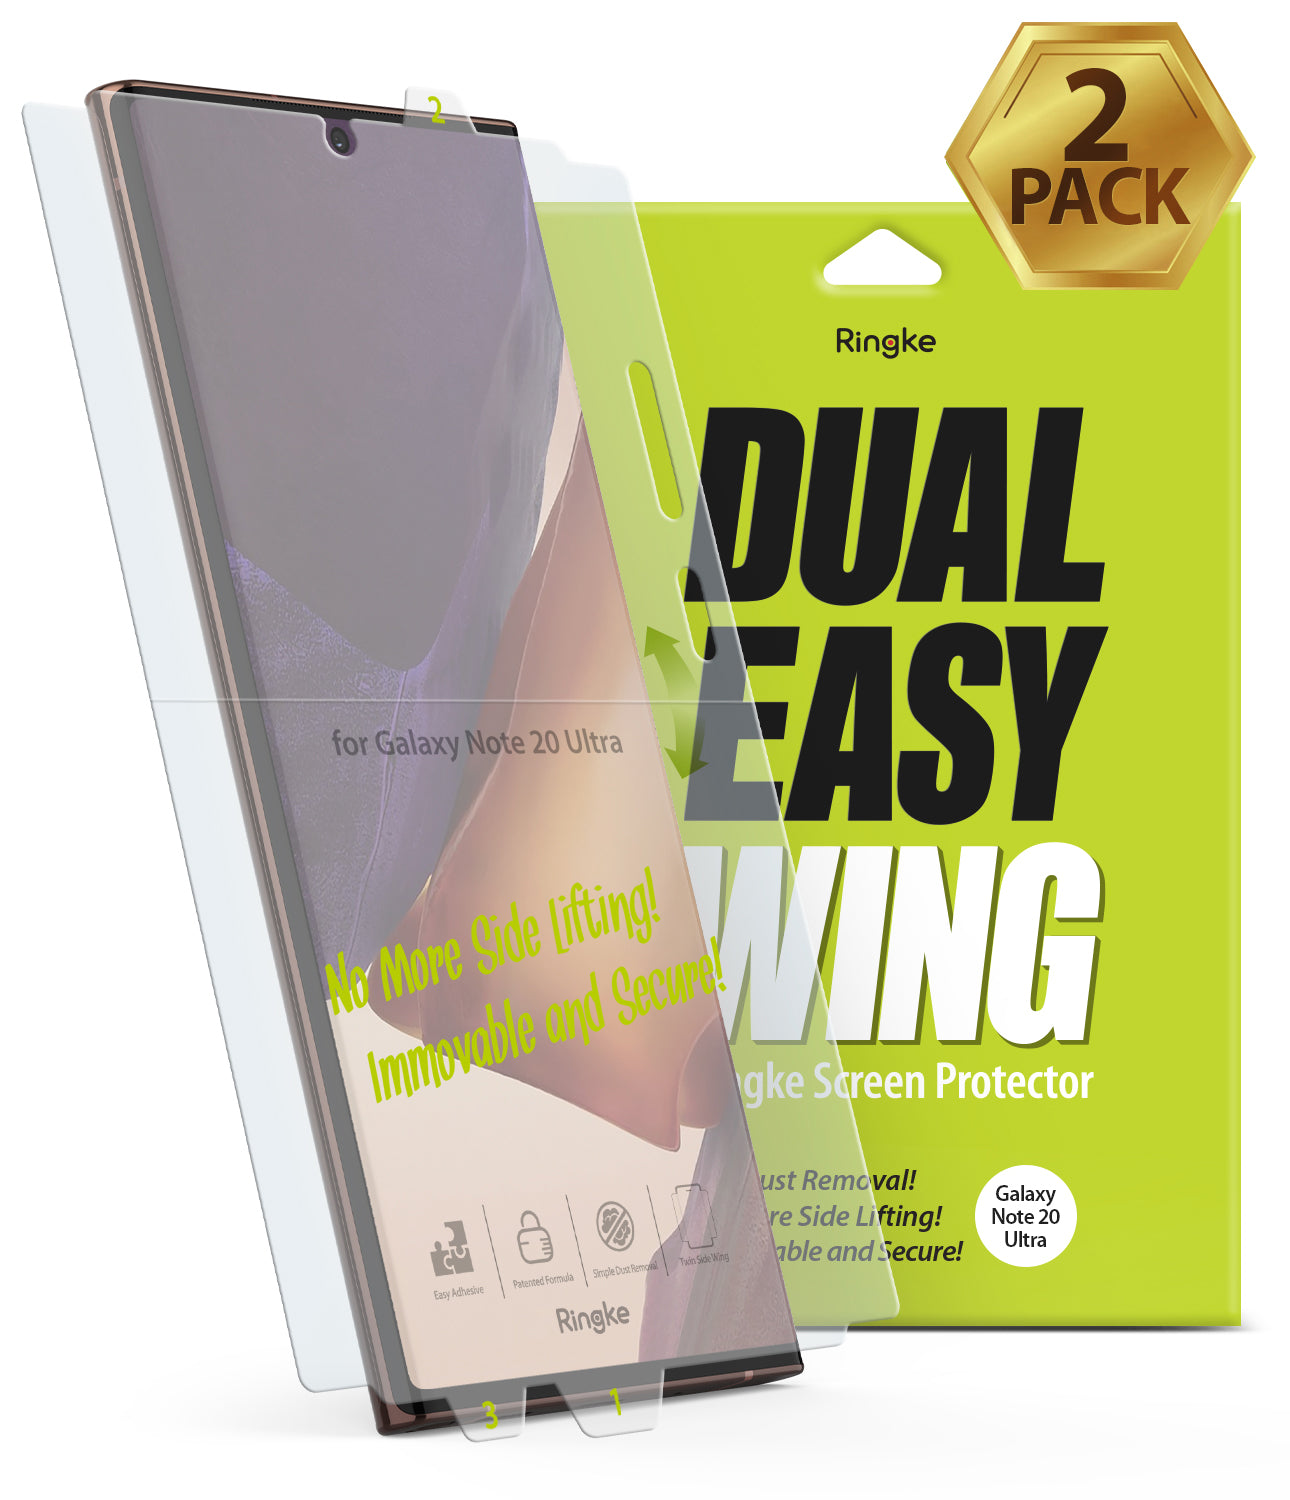 Galaxy Note 20 Ultra Screen Protector | Dual Easy Film